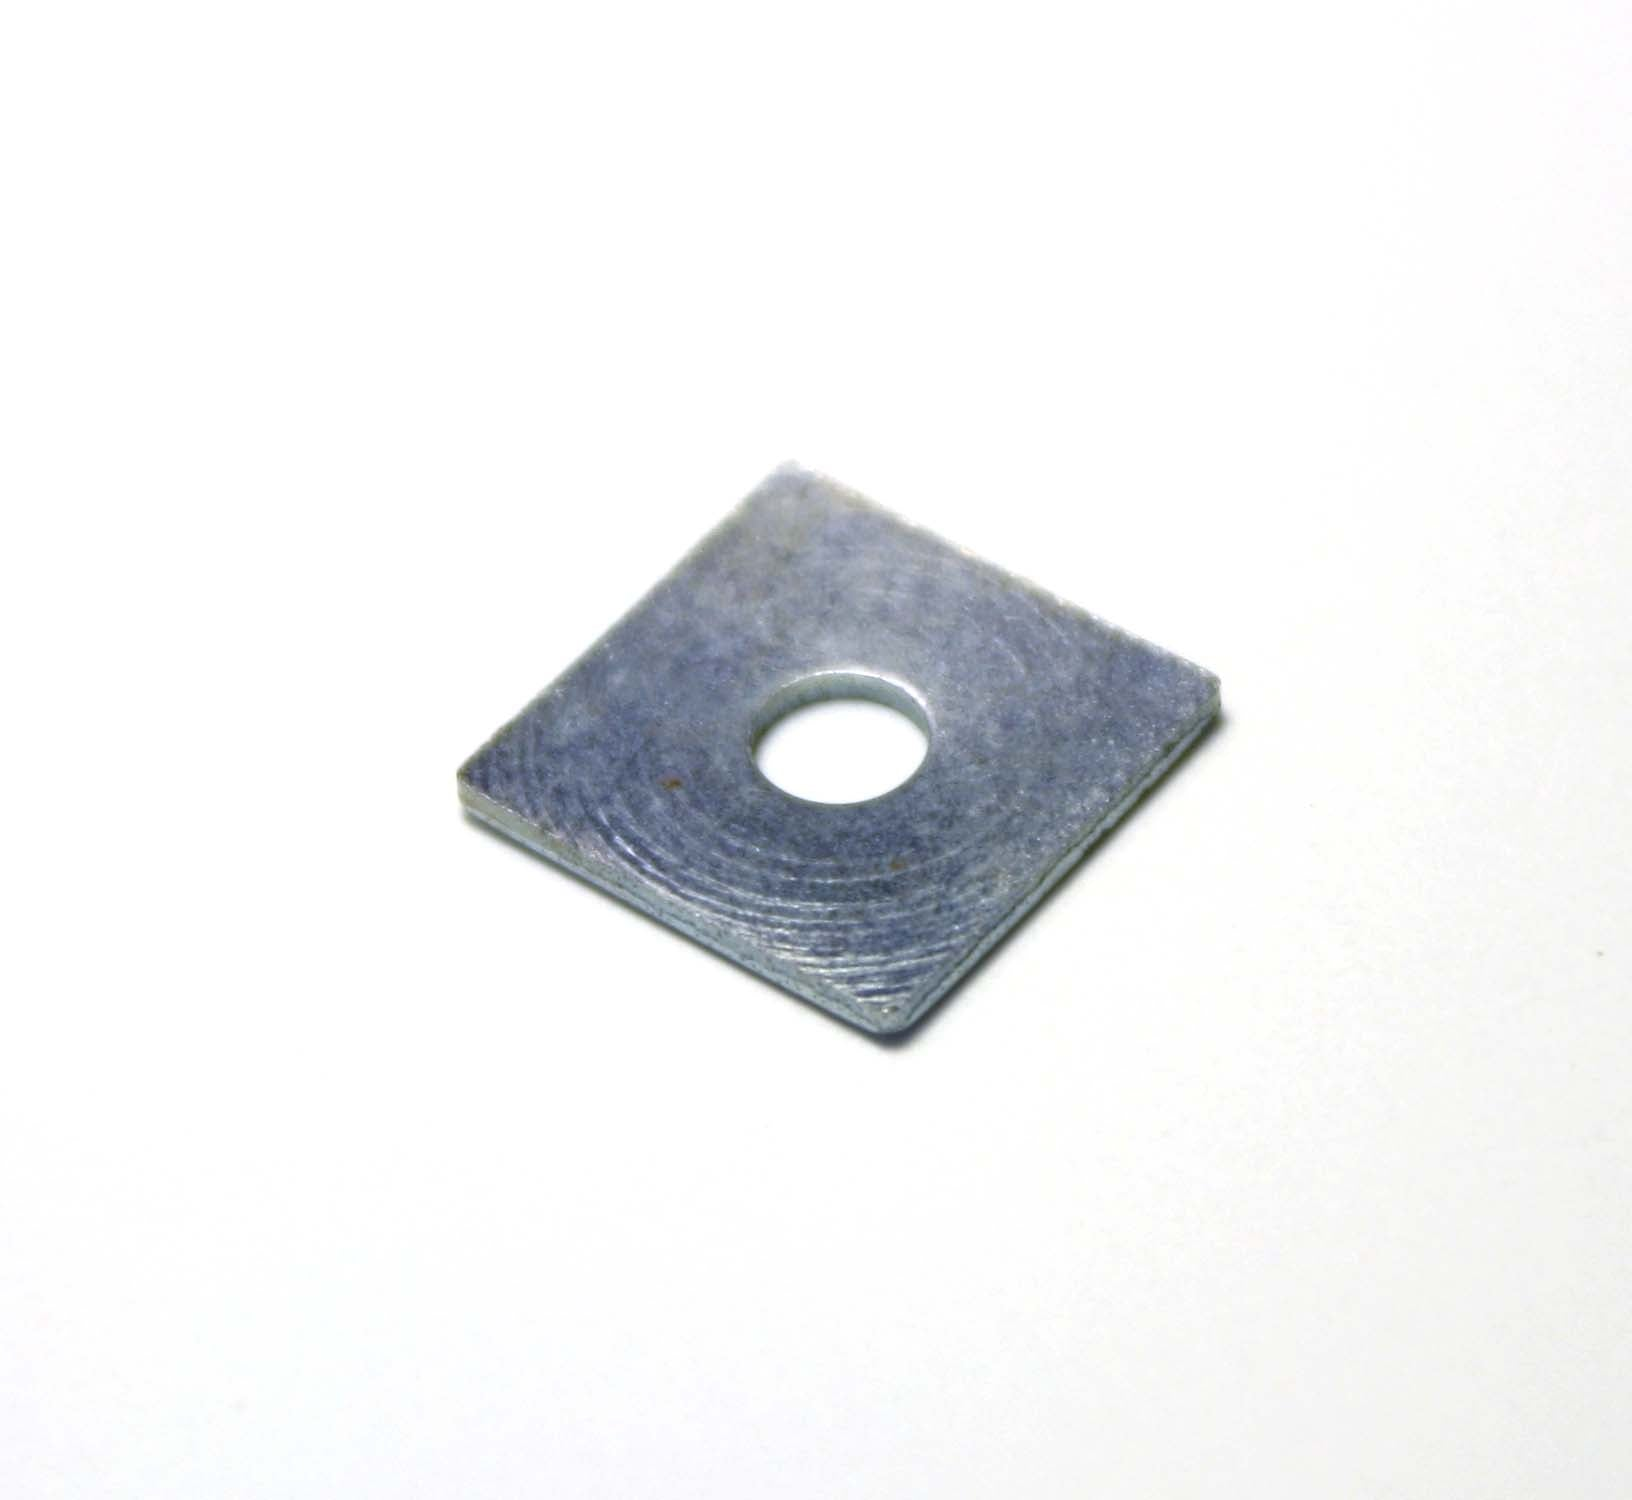 Square Plate with hole in middle